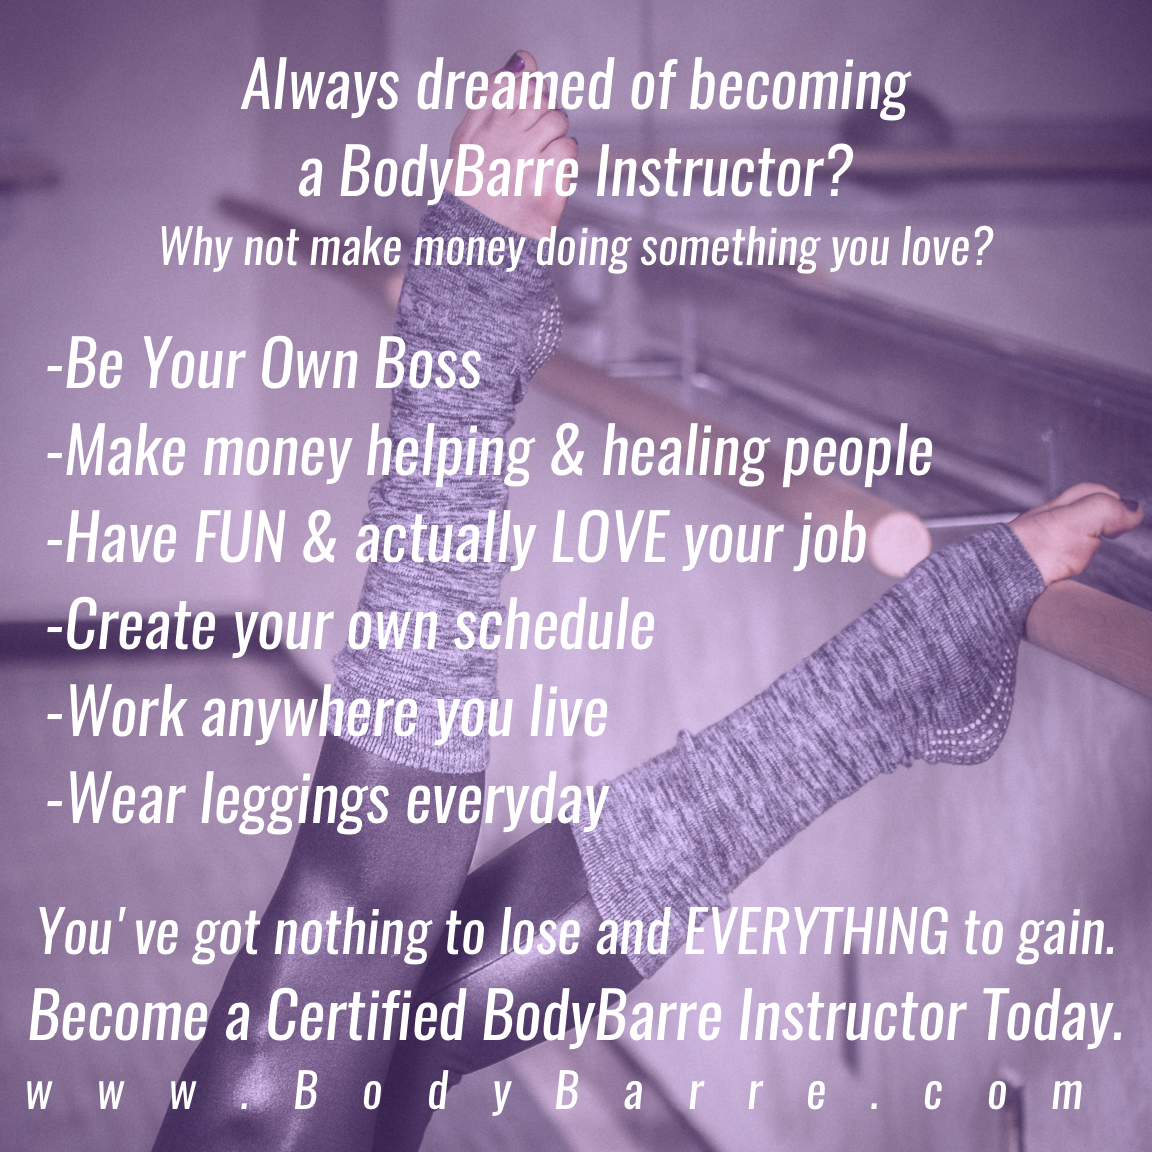 PERKS OF BEING A BODYBARRE INSTRUCTOR